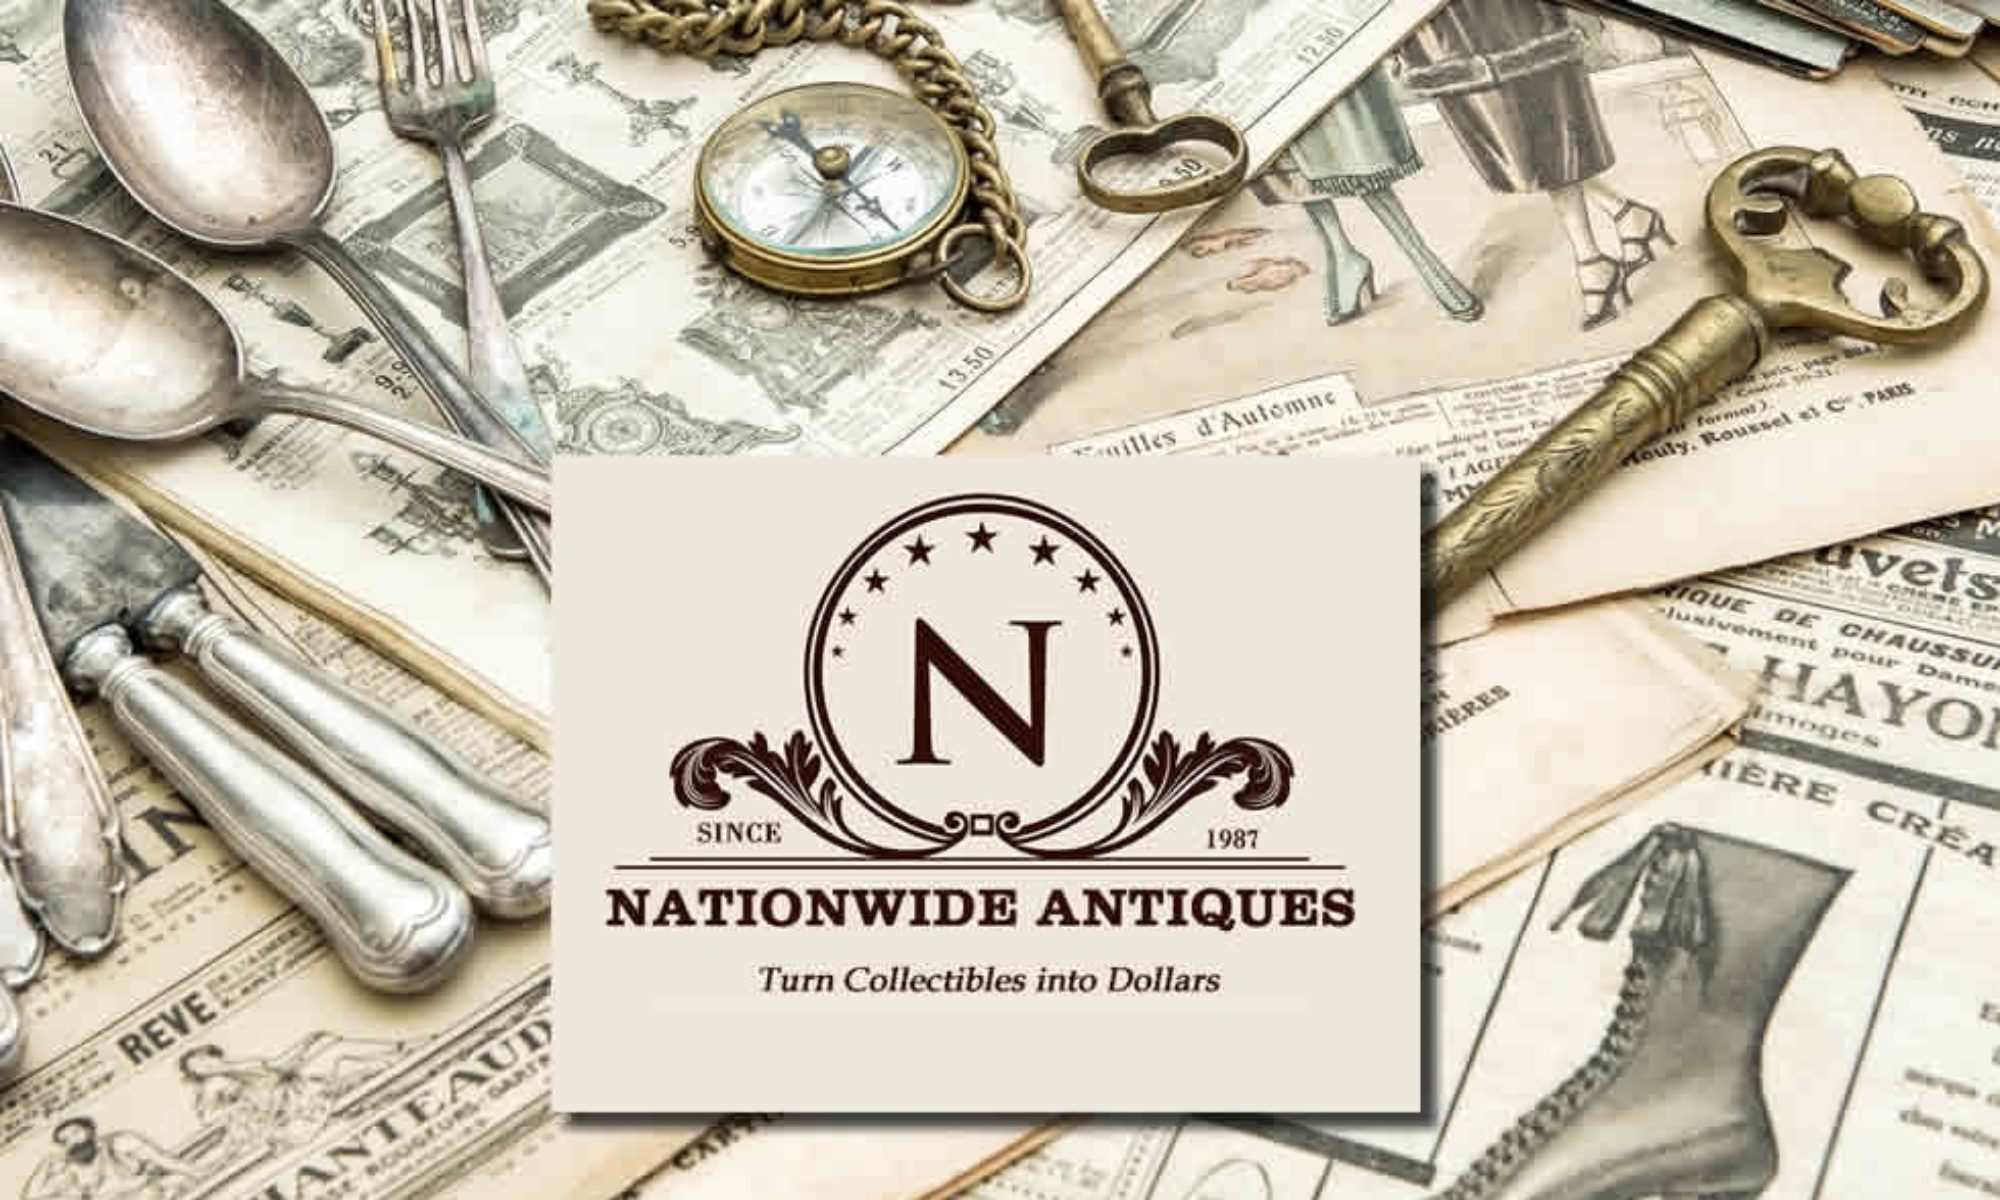 Nationwide Antiques